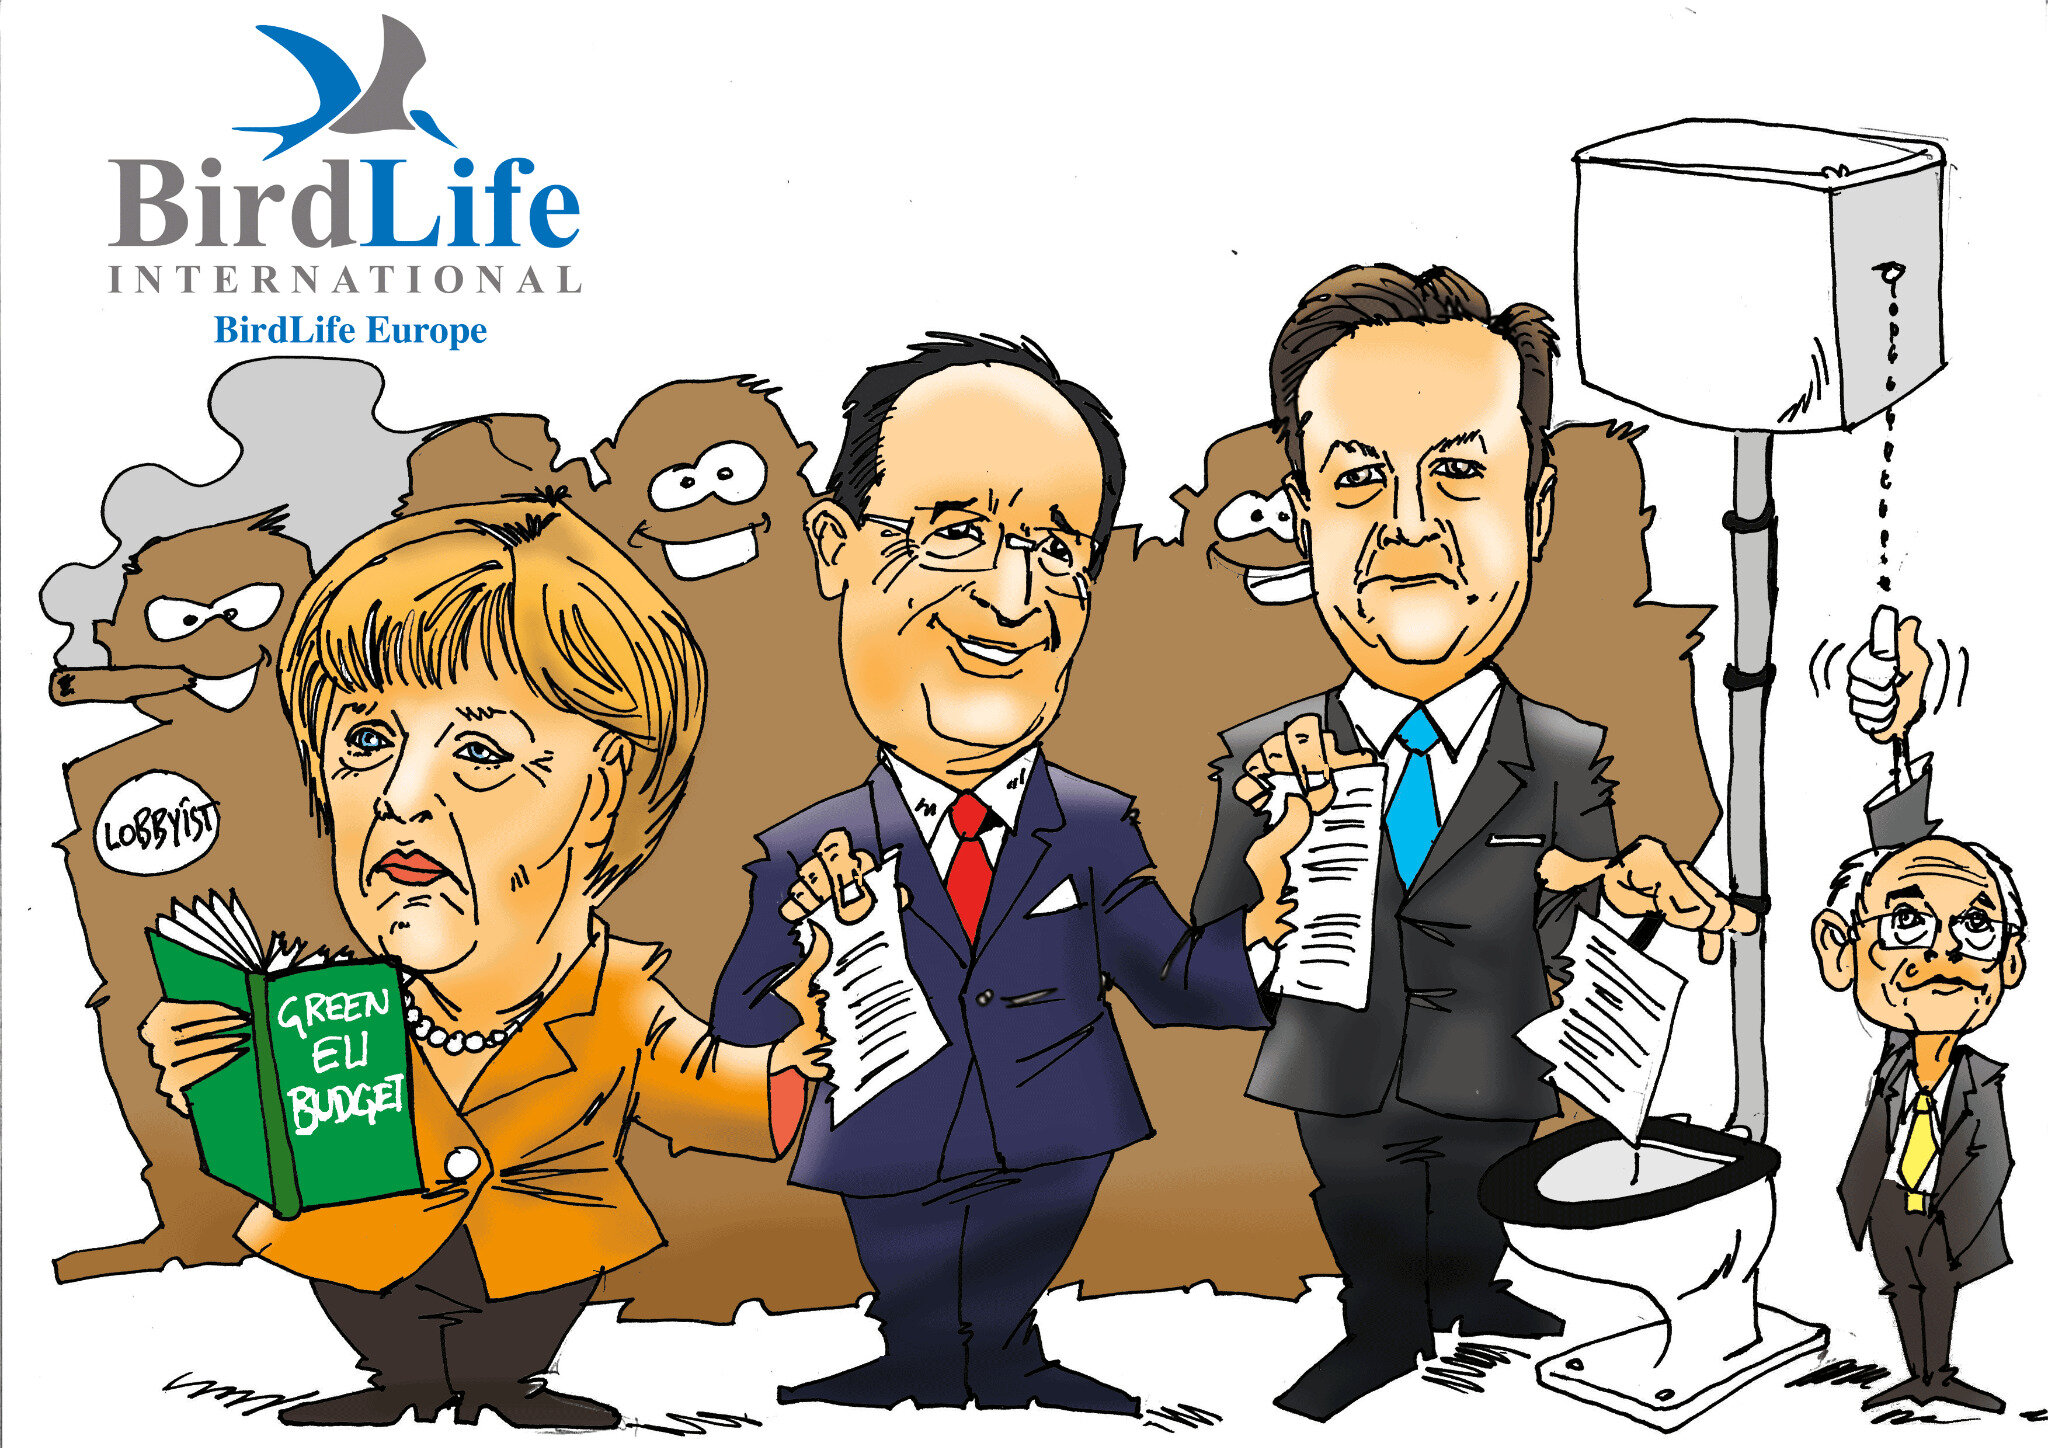 BirdLife Europe: EU citizens betrayed by Heads of State under heavy influence from the green-wash lobby, cartoon